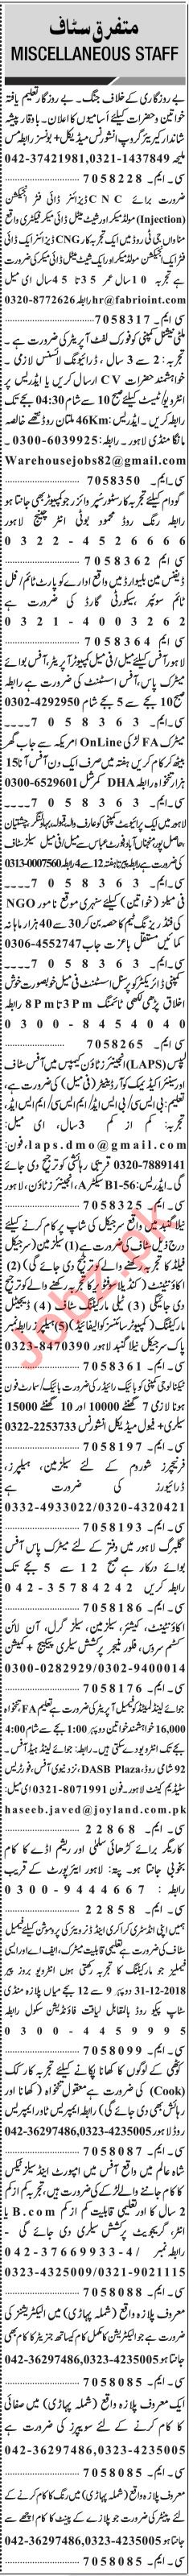 Jang Sunday Classified Ads 30th Dec 2018 Miscellaneous Staff